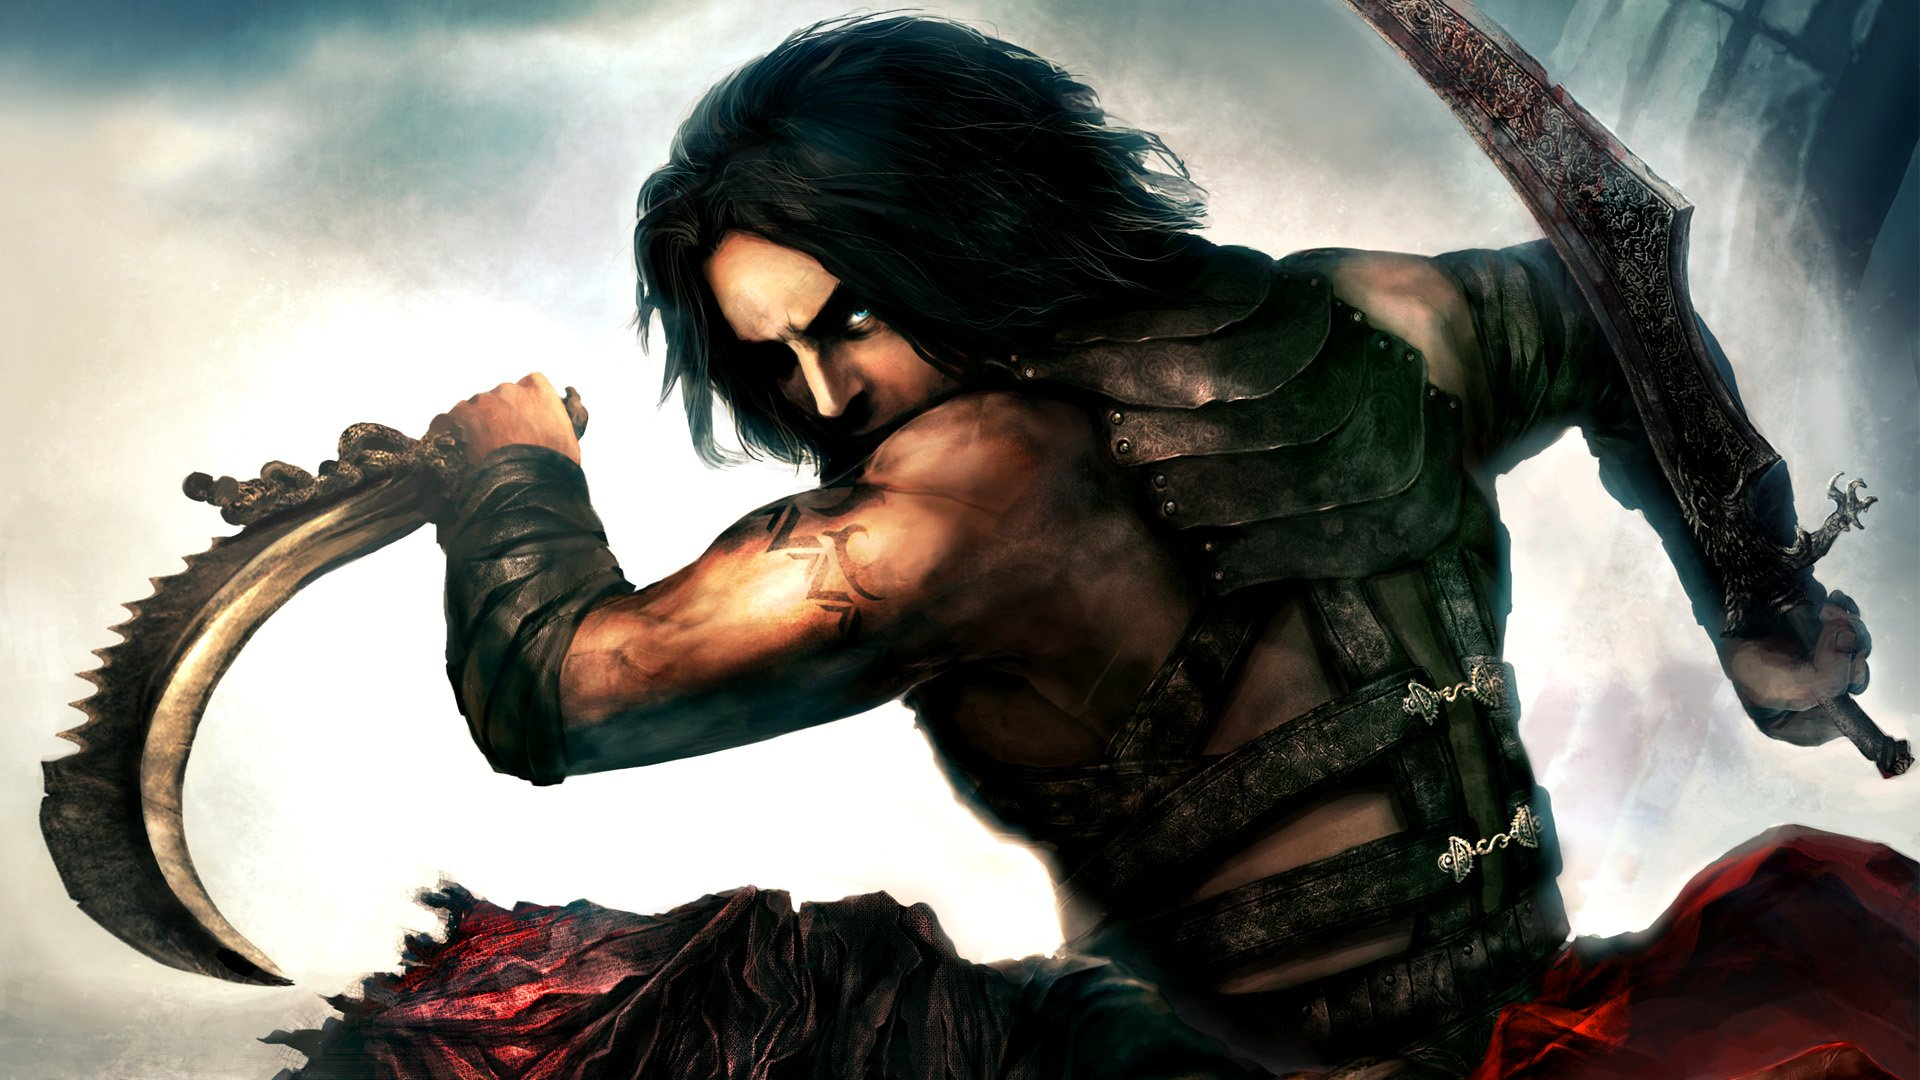 prince of persia: warrior within full hd wallpaper and background